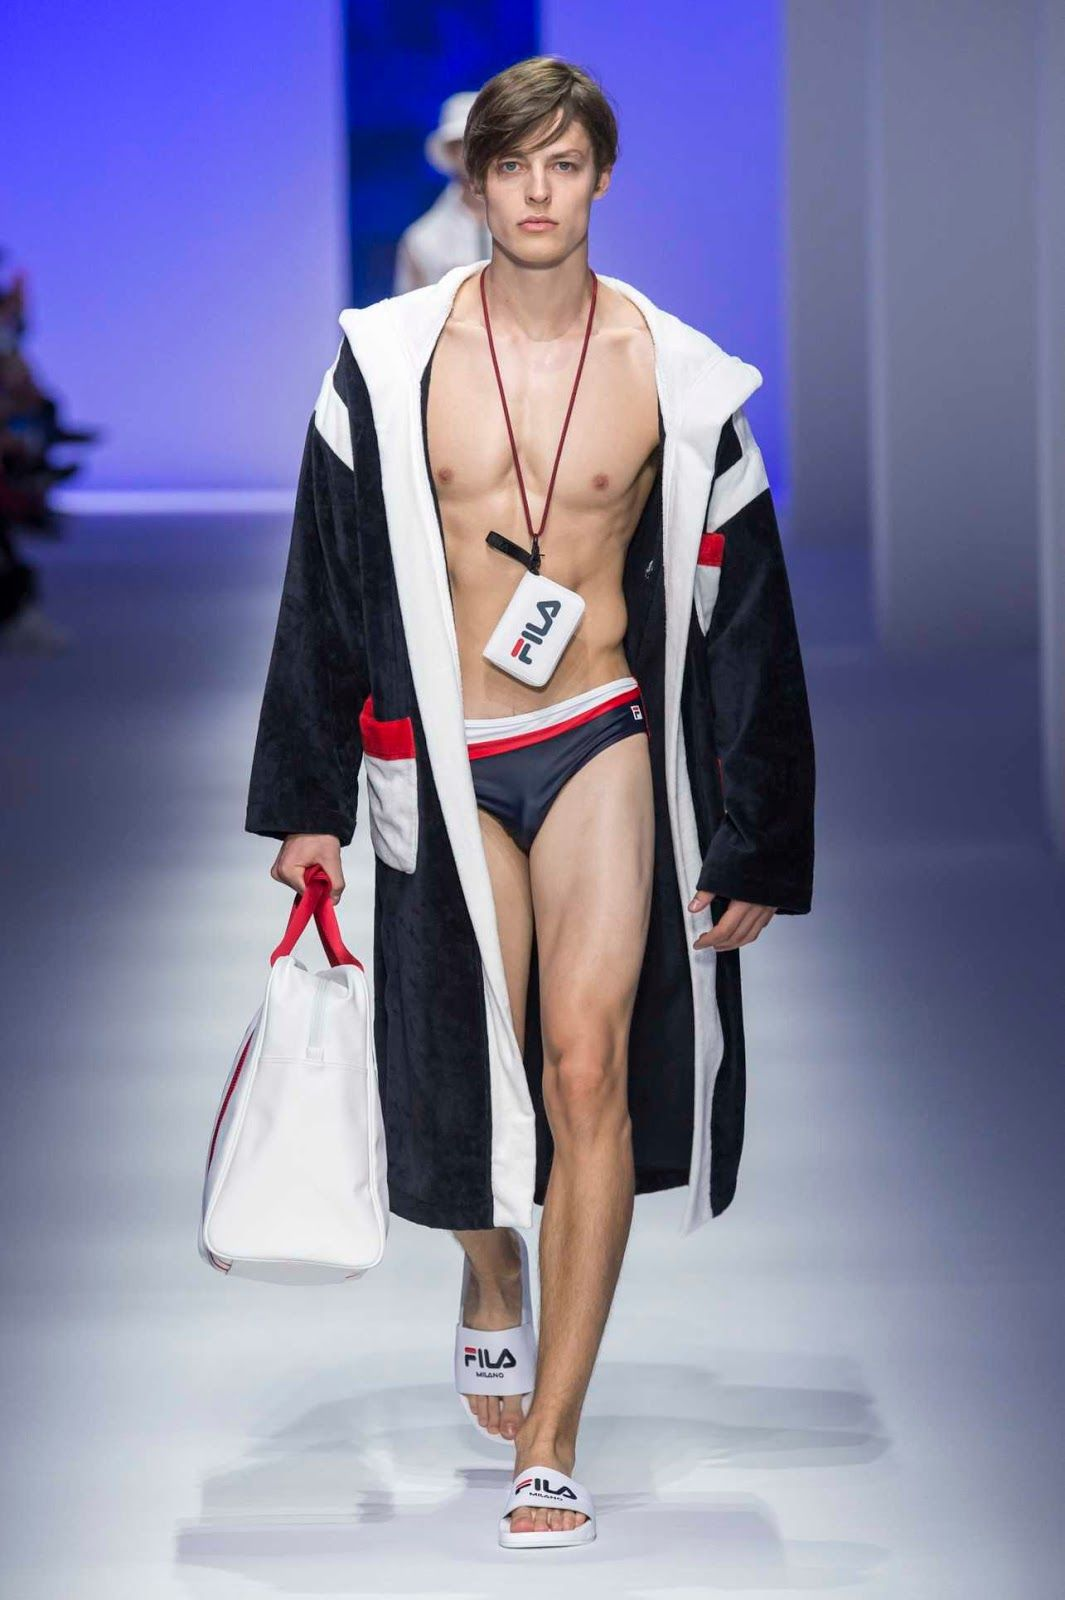 97e9dc488f6f Male Fashion Trends  Fila Spring-Summer 2019 Runway Show